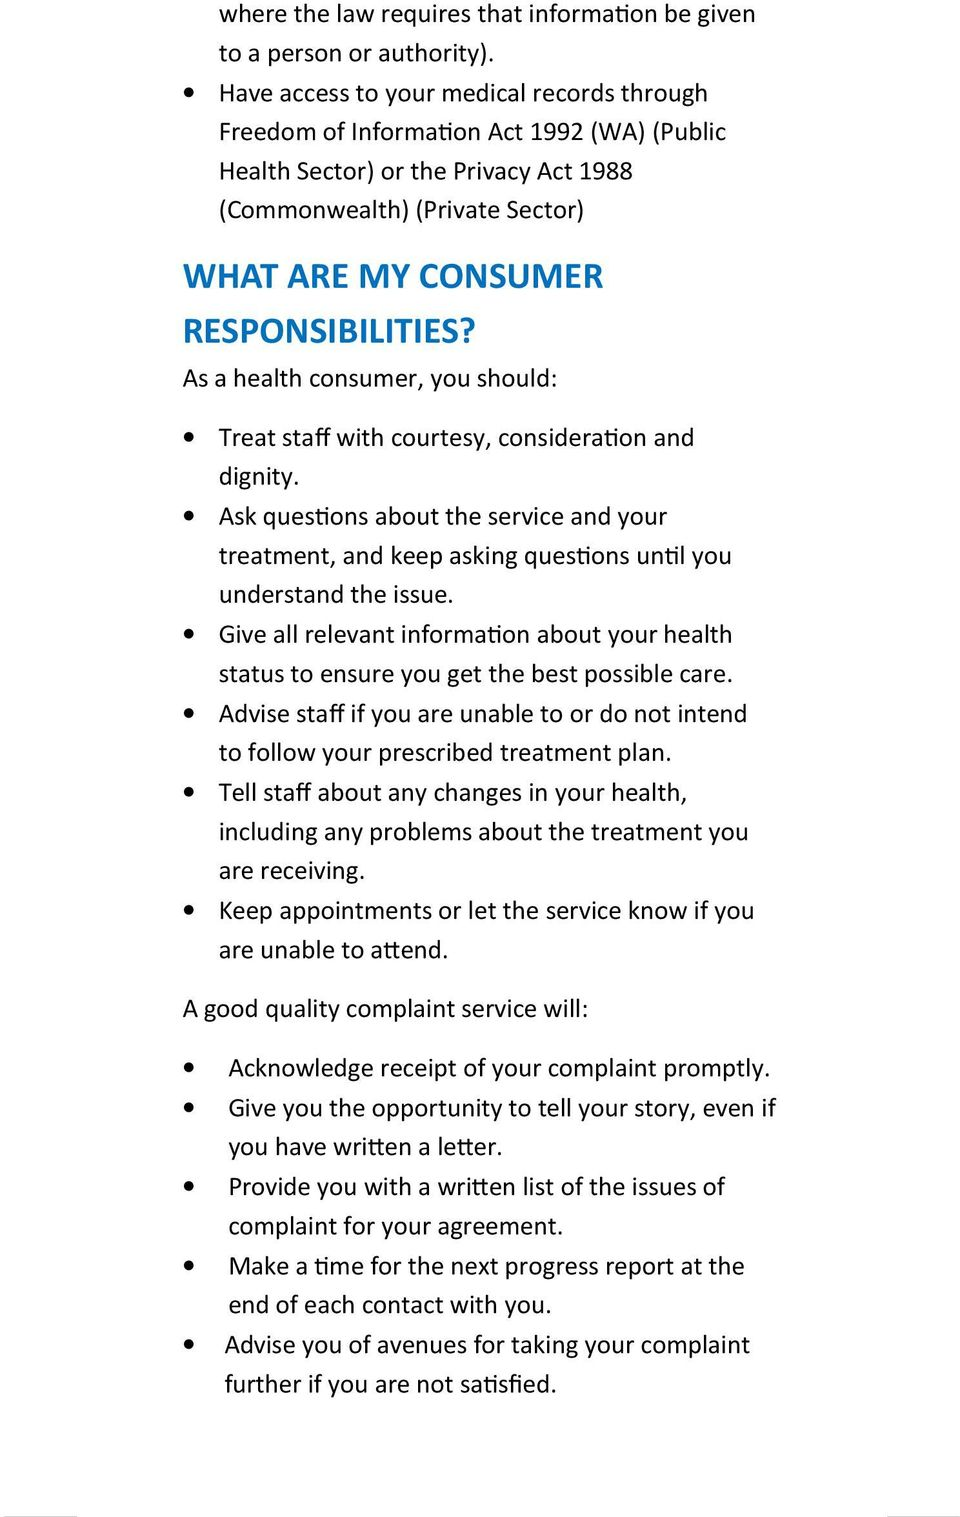 "As a health consumer, you should: Treat staff with courtesy, considera""on and dignity. Ask ques""ons about the service and your treatment, and keep asking ques""ons un""l you understand the issue."